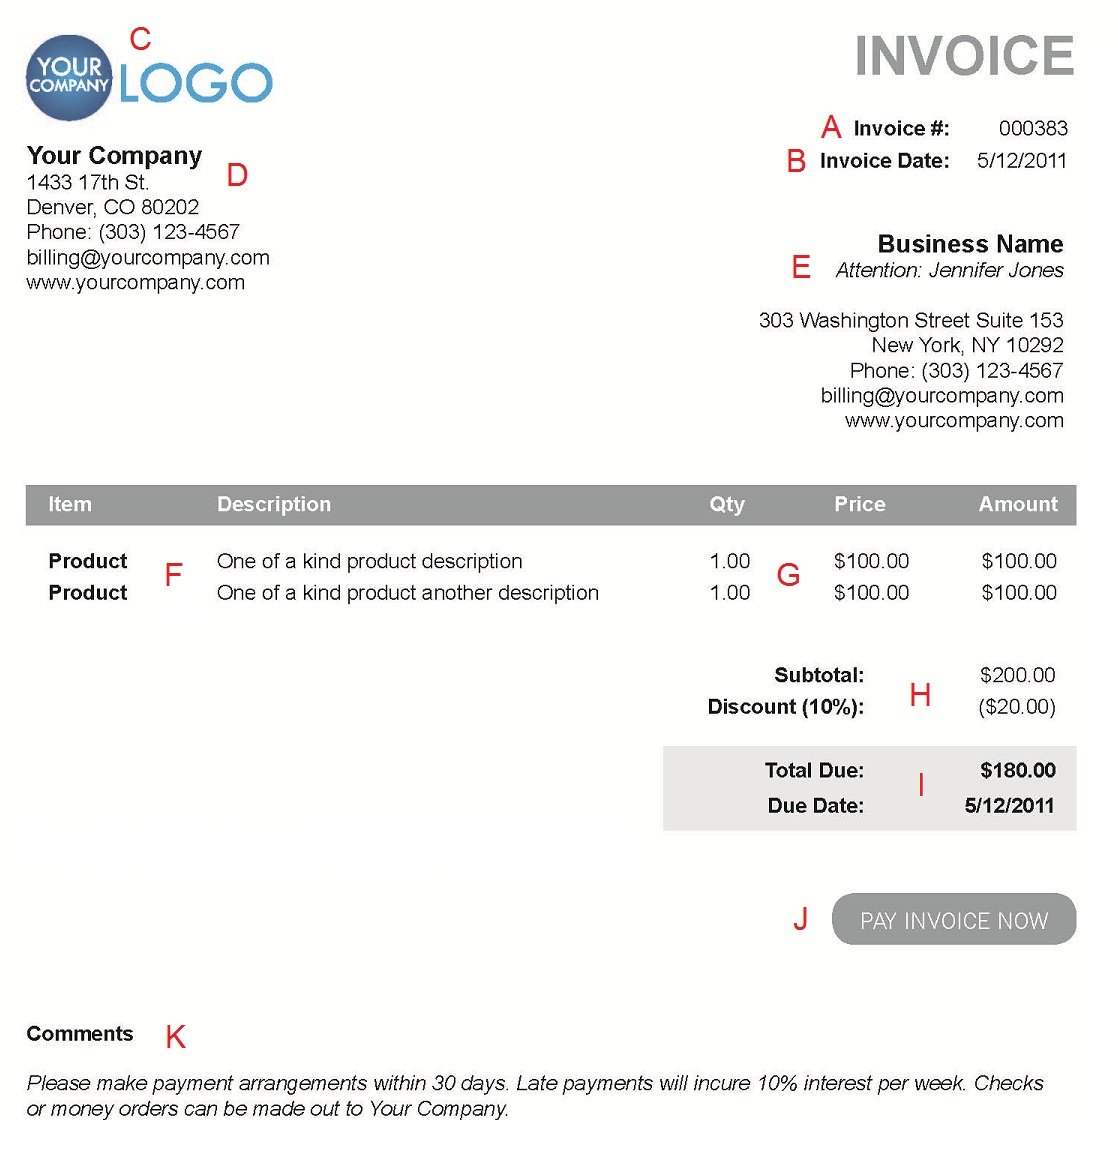 Reliefworkersus  Inspiring The  Different Sections Of An Electronic Payment Invoice With Lovely A  With Enchanting Photography Invoice Sample Also Free Invoice Forms To Print In Addition Aynax Free Invoices And Legal Invoice Template As Well As Free Invoice Template For Word Additionally Free Printable Invoice Form From Paysimplecom With Reliefworkersus  Lovely The  Different Sections Of An Electronic Payment Invoice With Enchanting A  And Inspiring Photography Invoice Sample Also Free Invoice Forms To Print In Addition Aynax Free Invoices From Paysimplecom